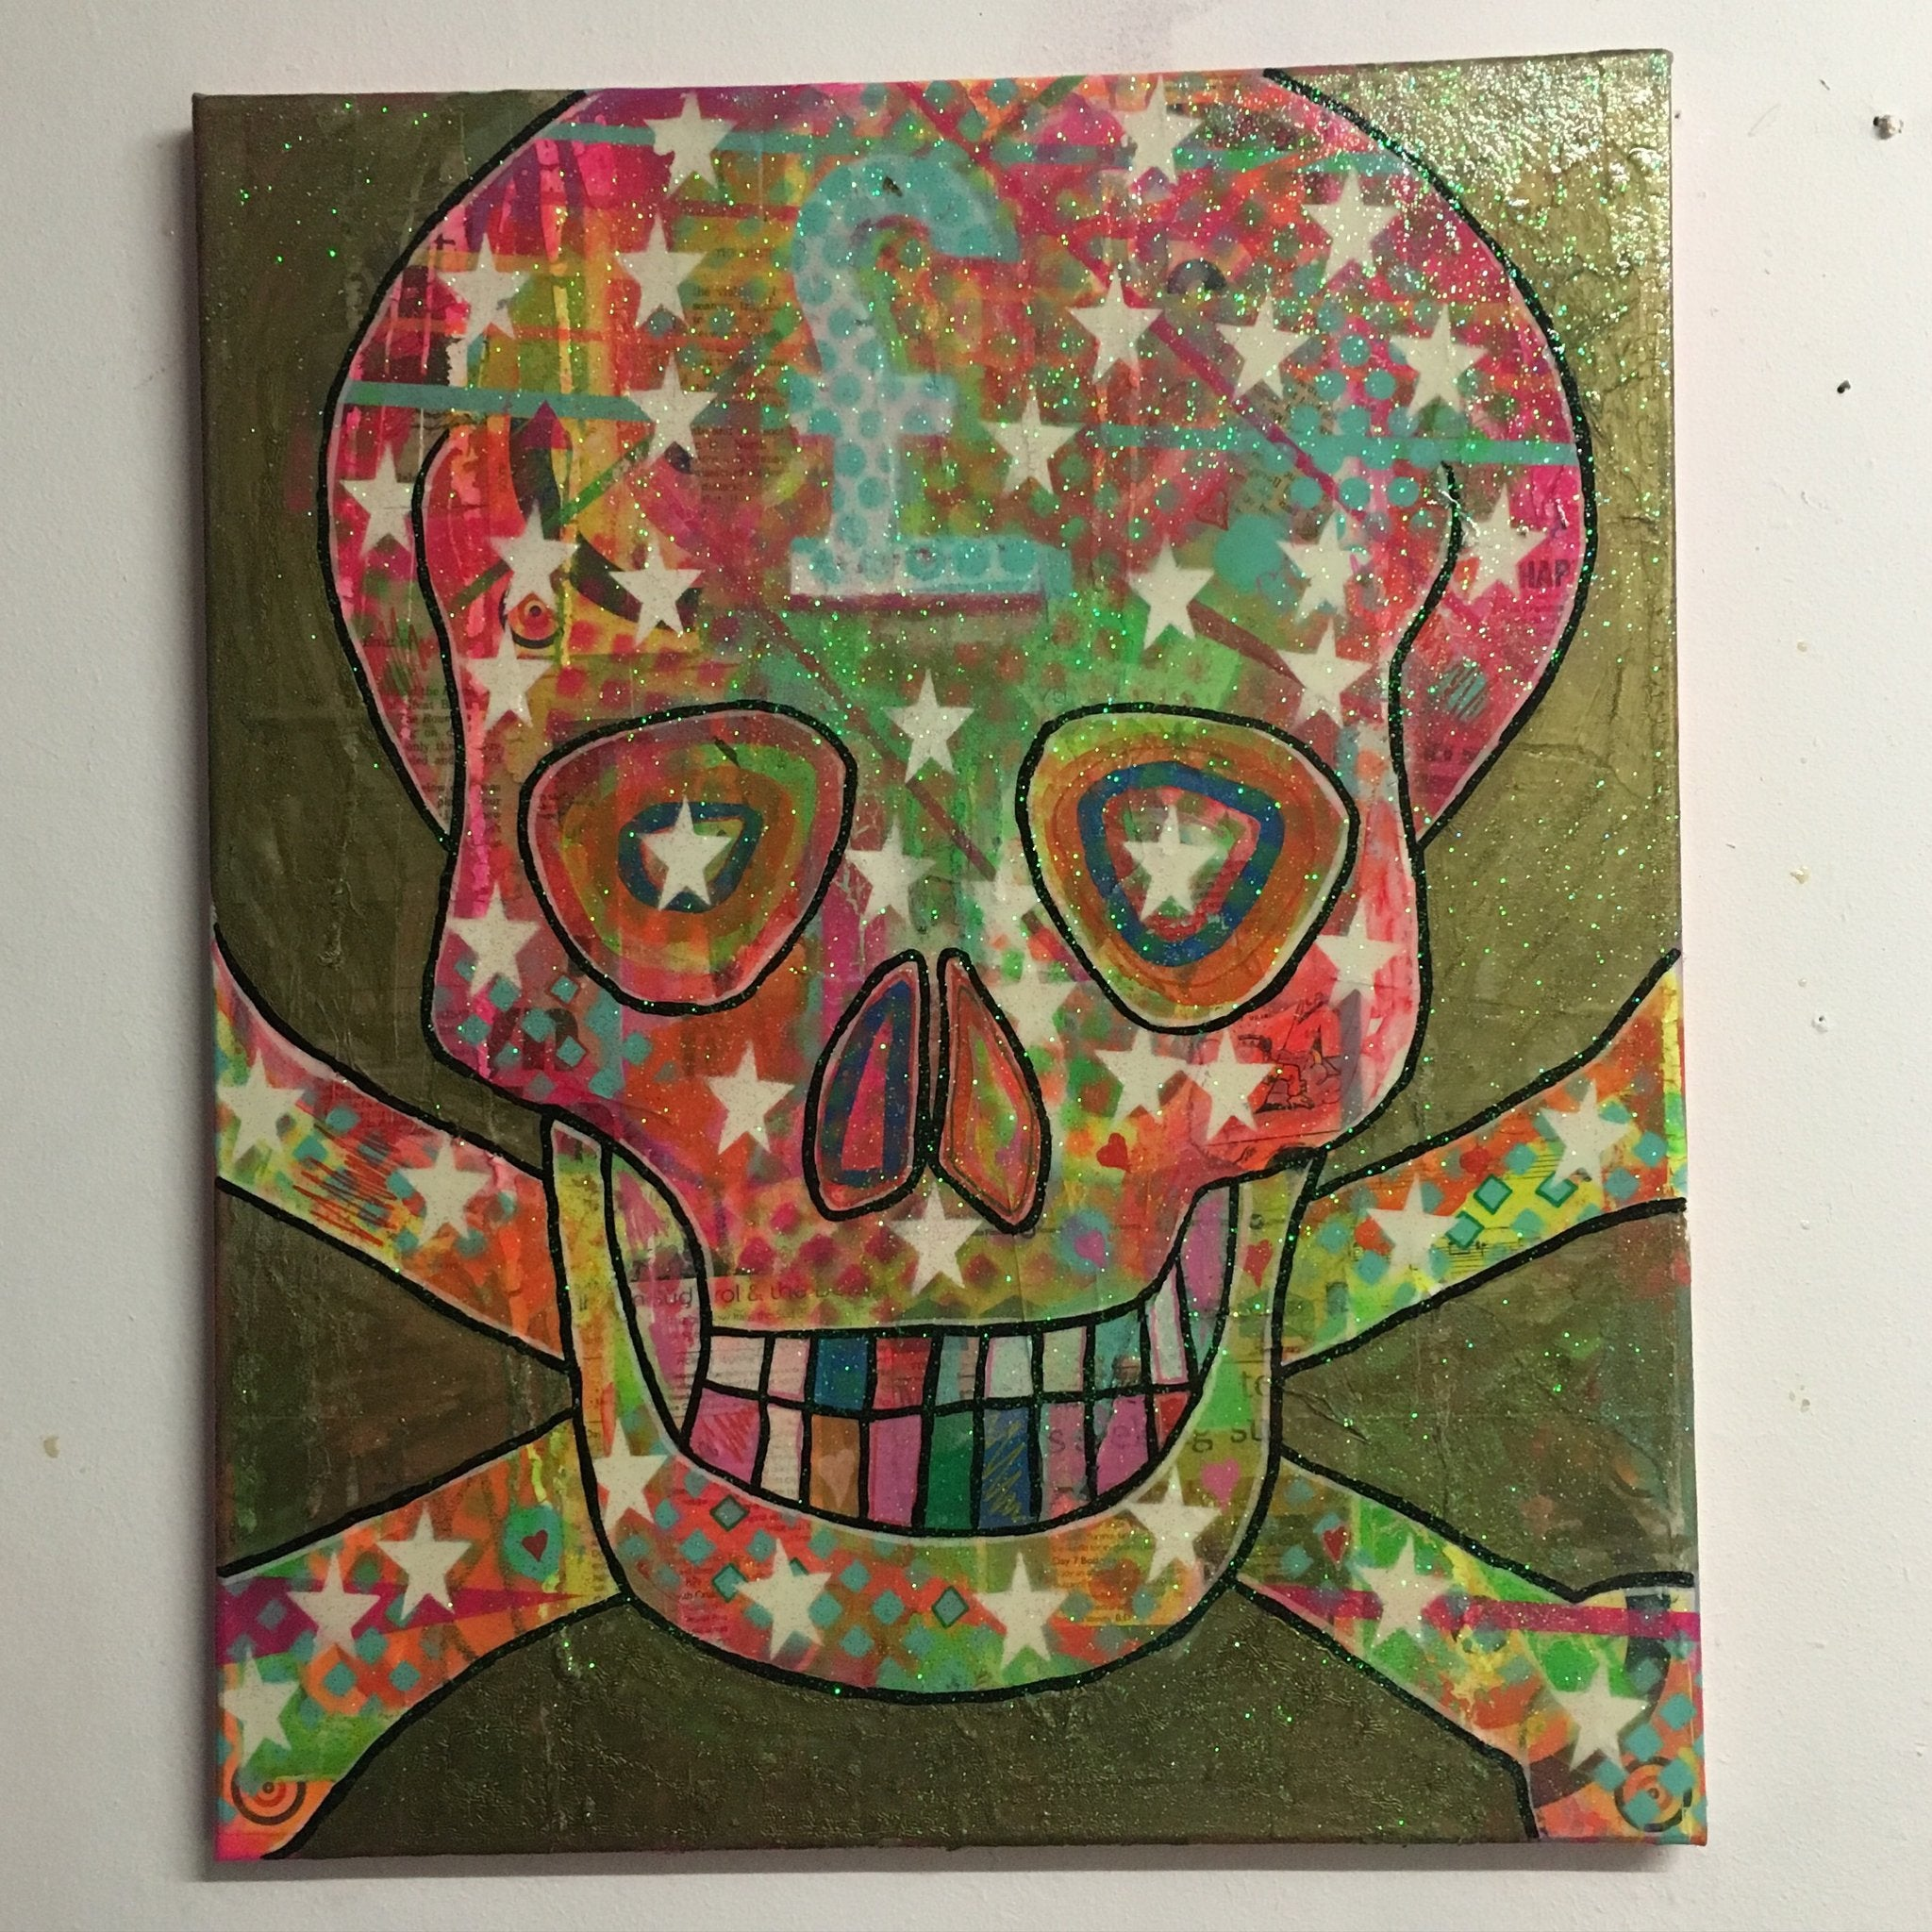 Cobra Juicy by Barrie J Davies 2016, mixed media painting on canvas, 50cm x 60cm, unframed. Barrie J Davies is an Artist - Pop Art and Street art inspired Artist based in Brighton England UK - Pop Art Paintings, Street Art Prints & Editions available.